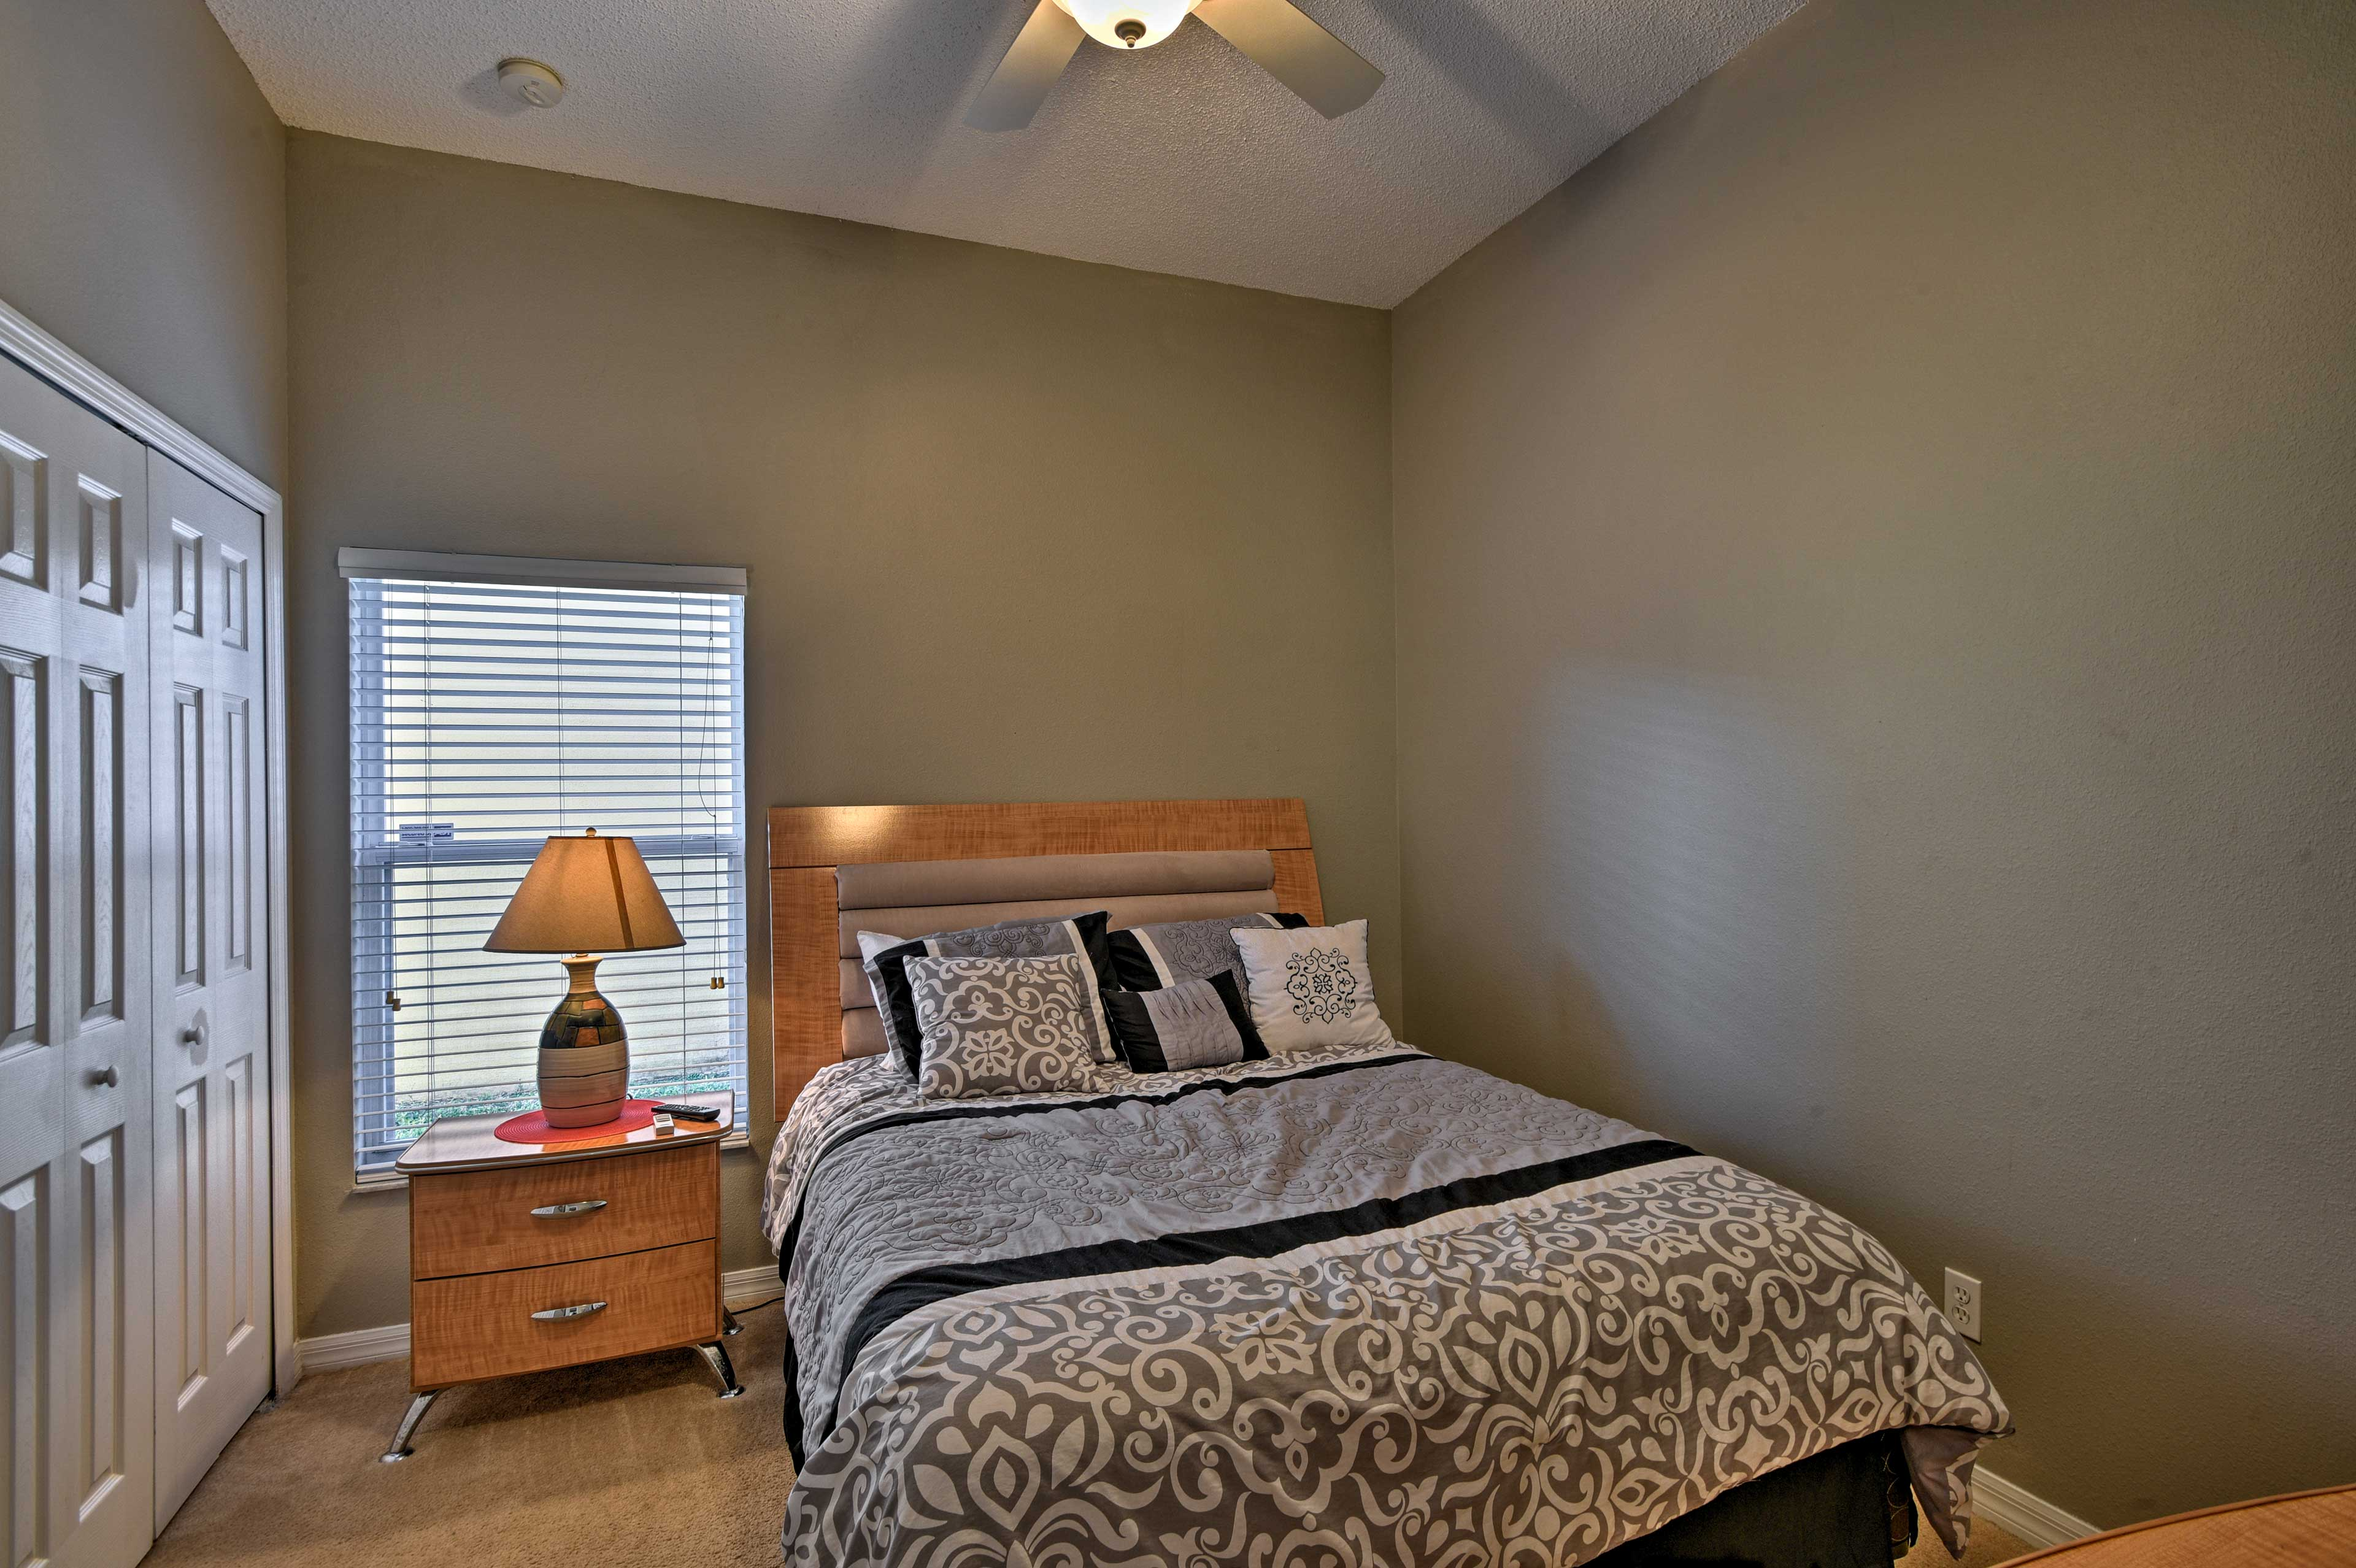 The third bedroom provides a queen-sized bed.